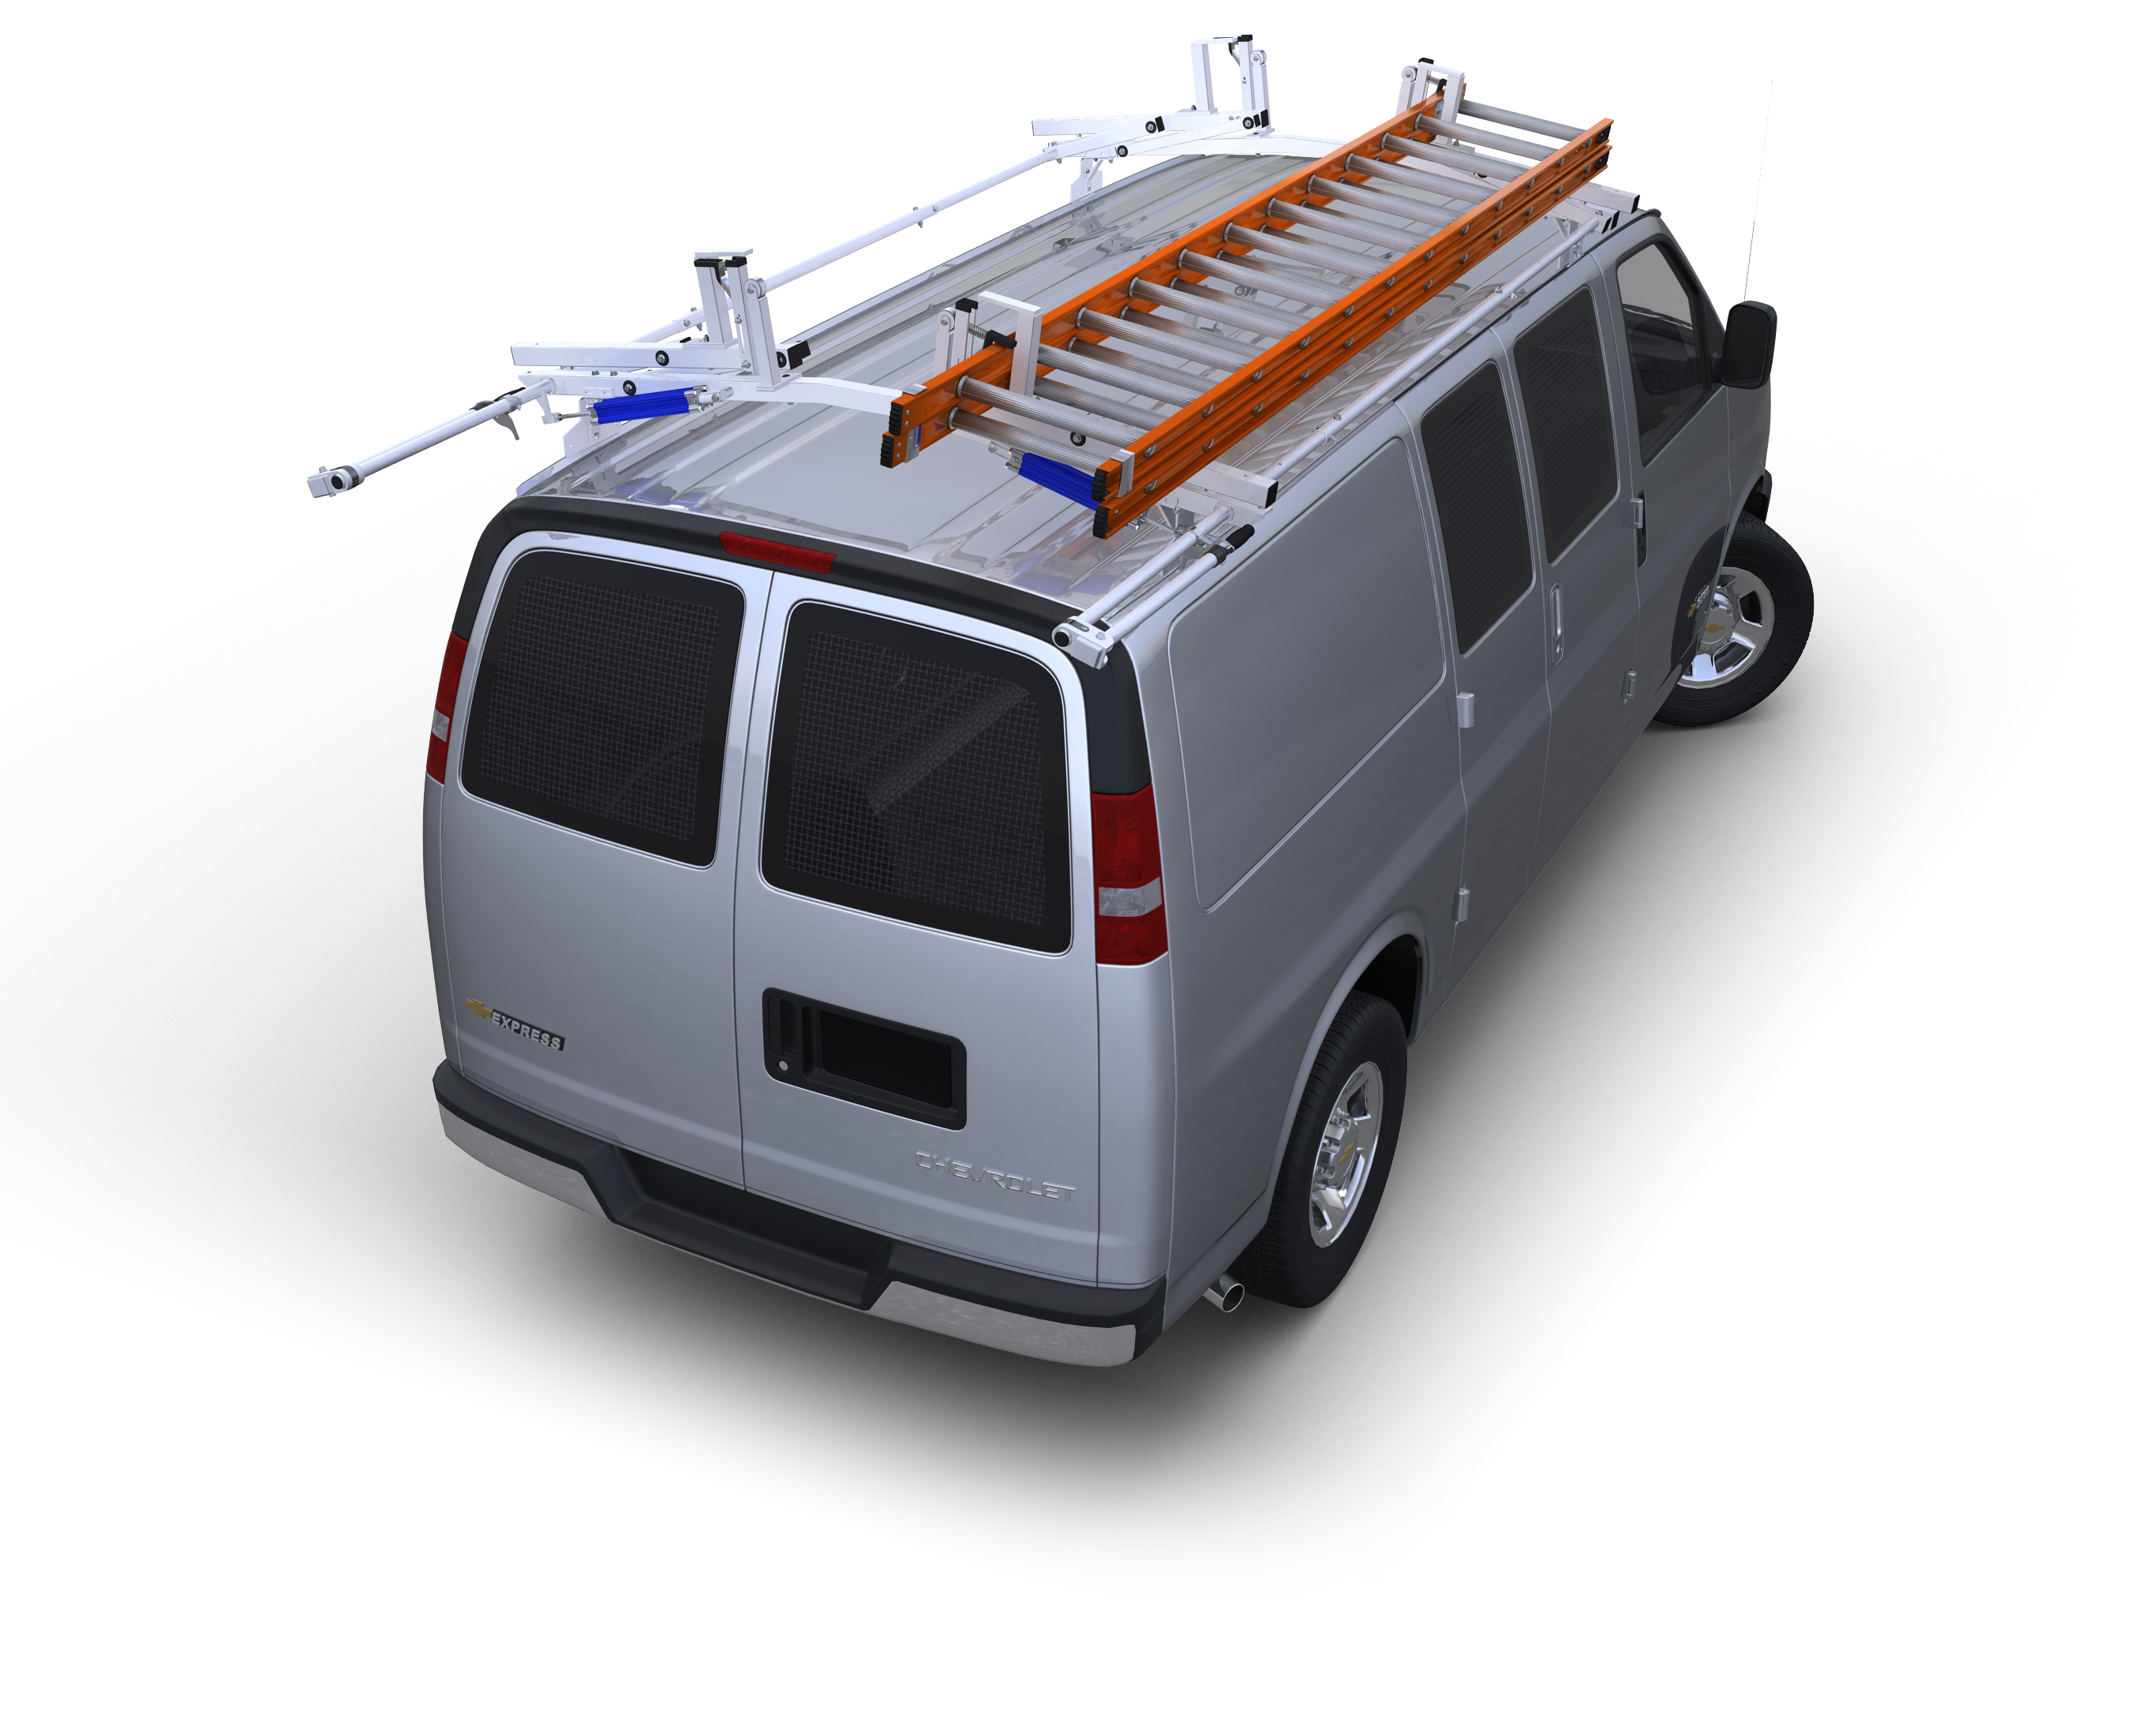 Shelf Tower for High Roof Vans